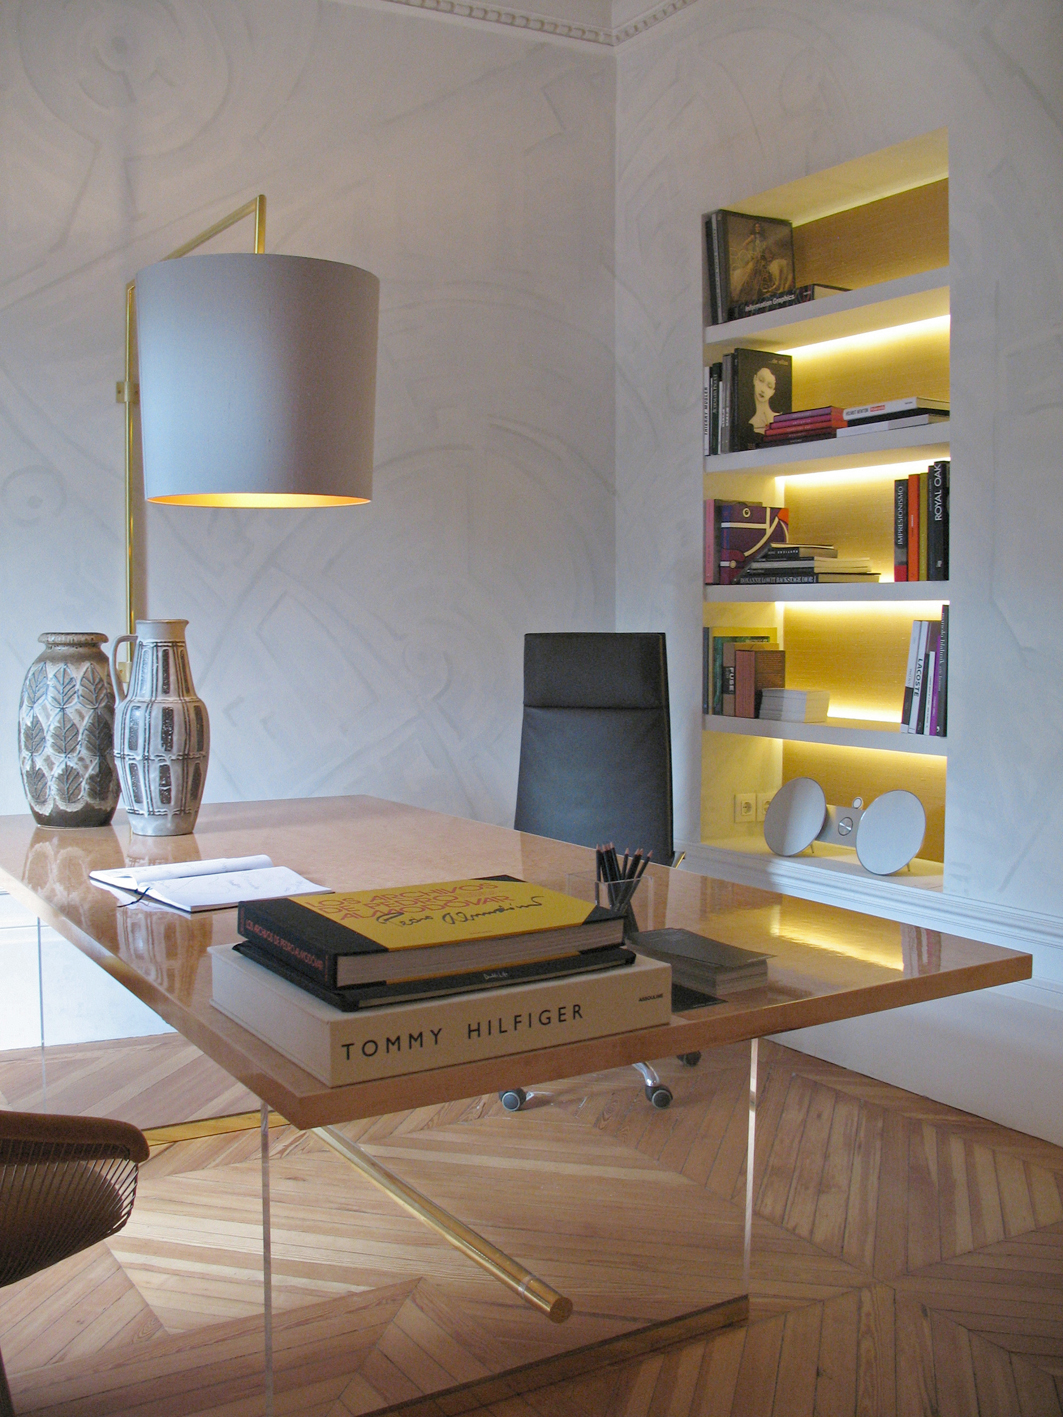 Erico navazo taller y medio - Interior lighting tips ...